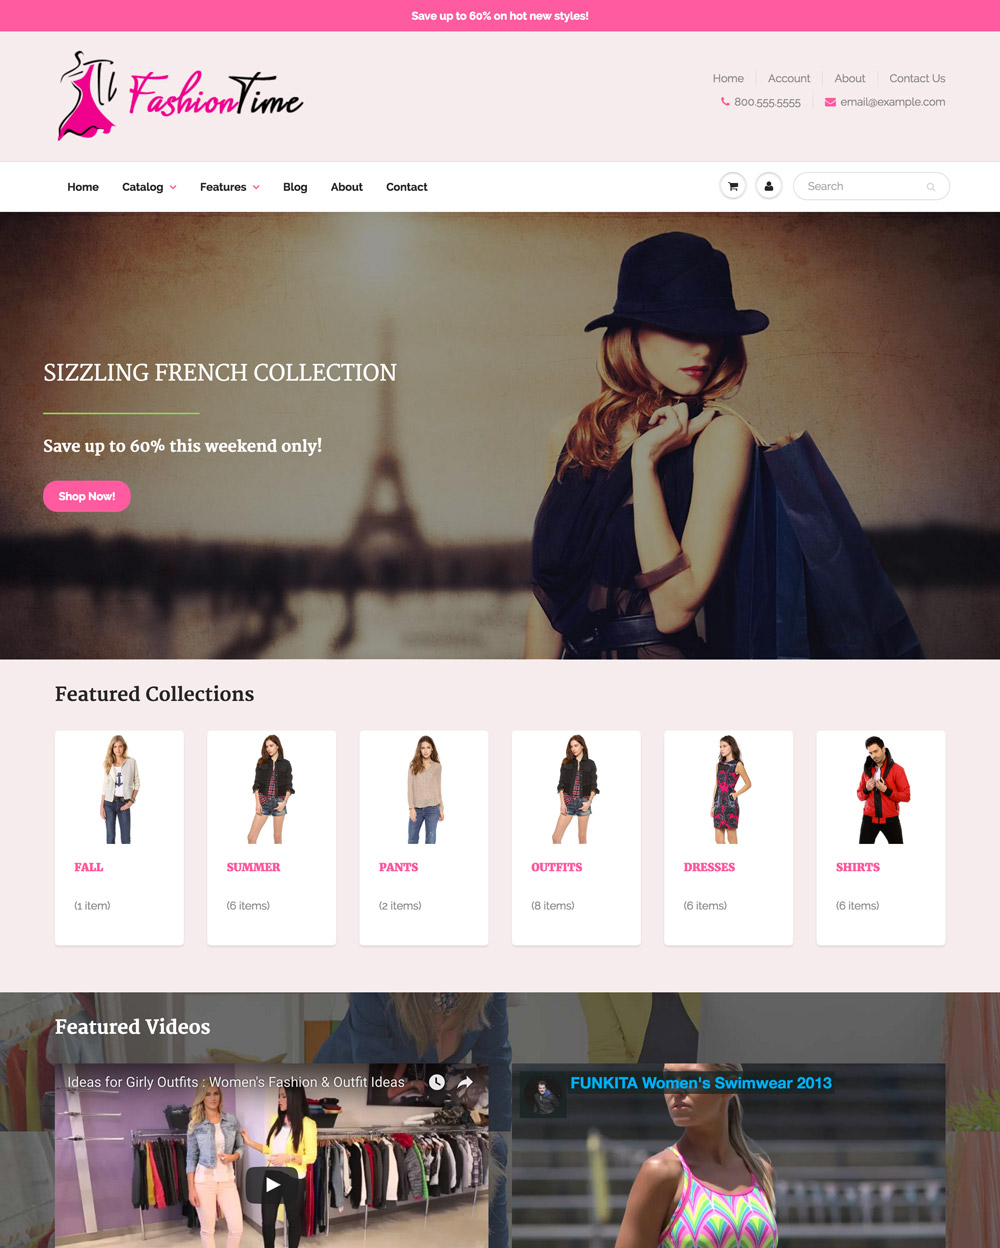 Fashiontime Theme Showtime Ecommerce Website Template